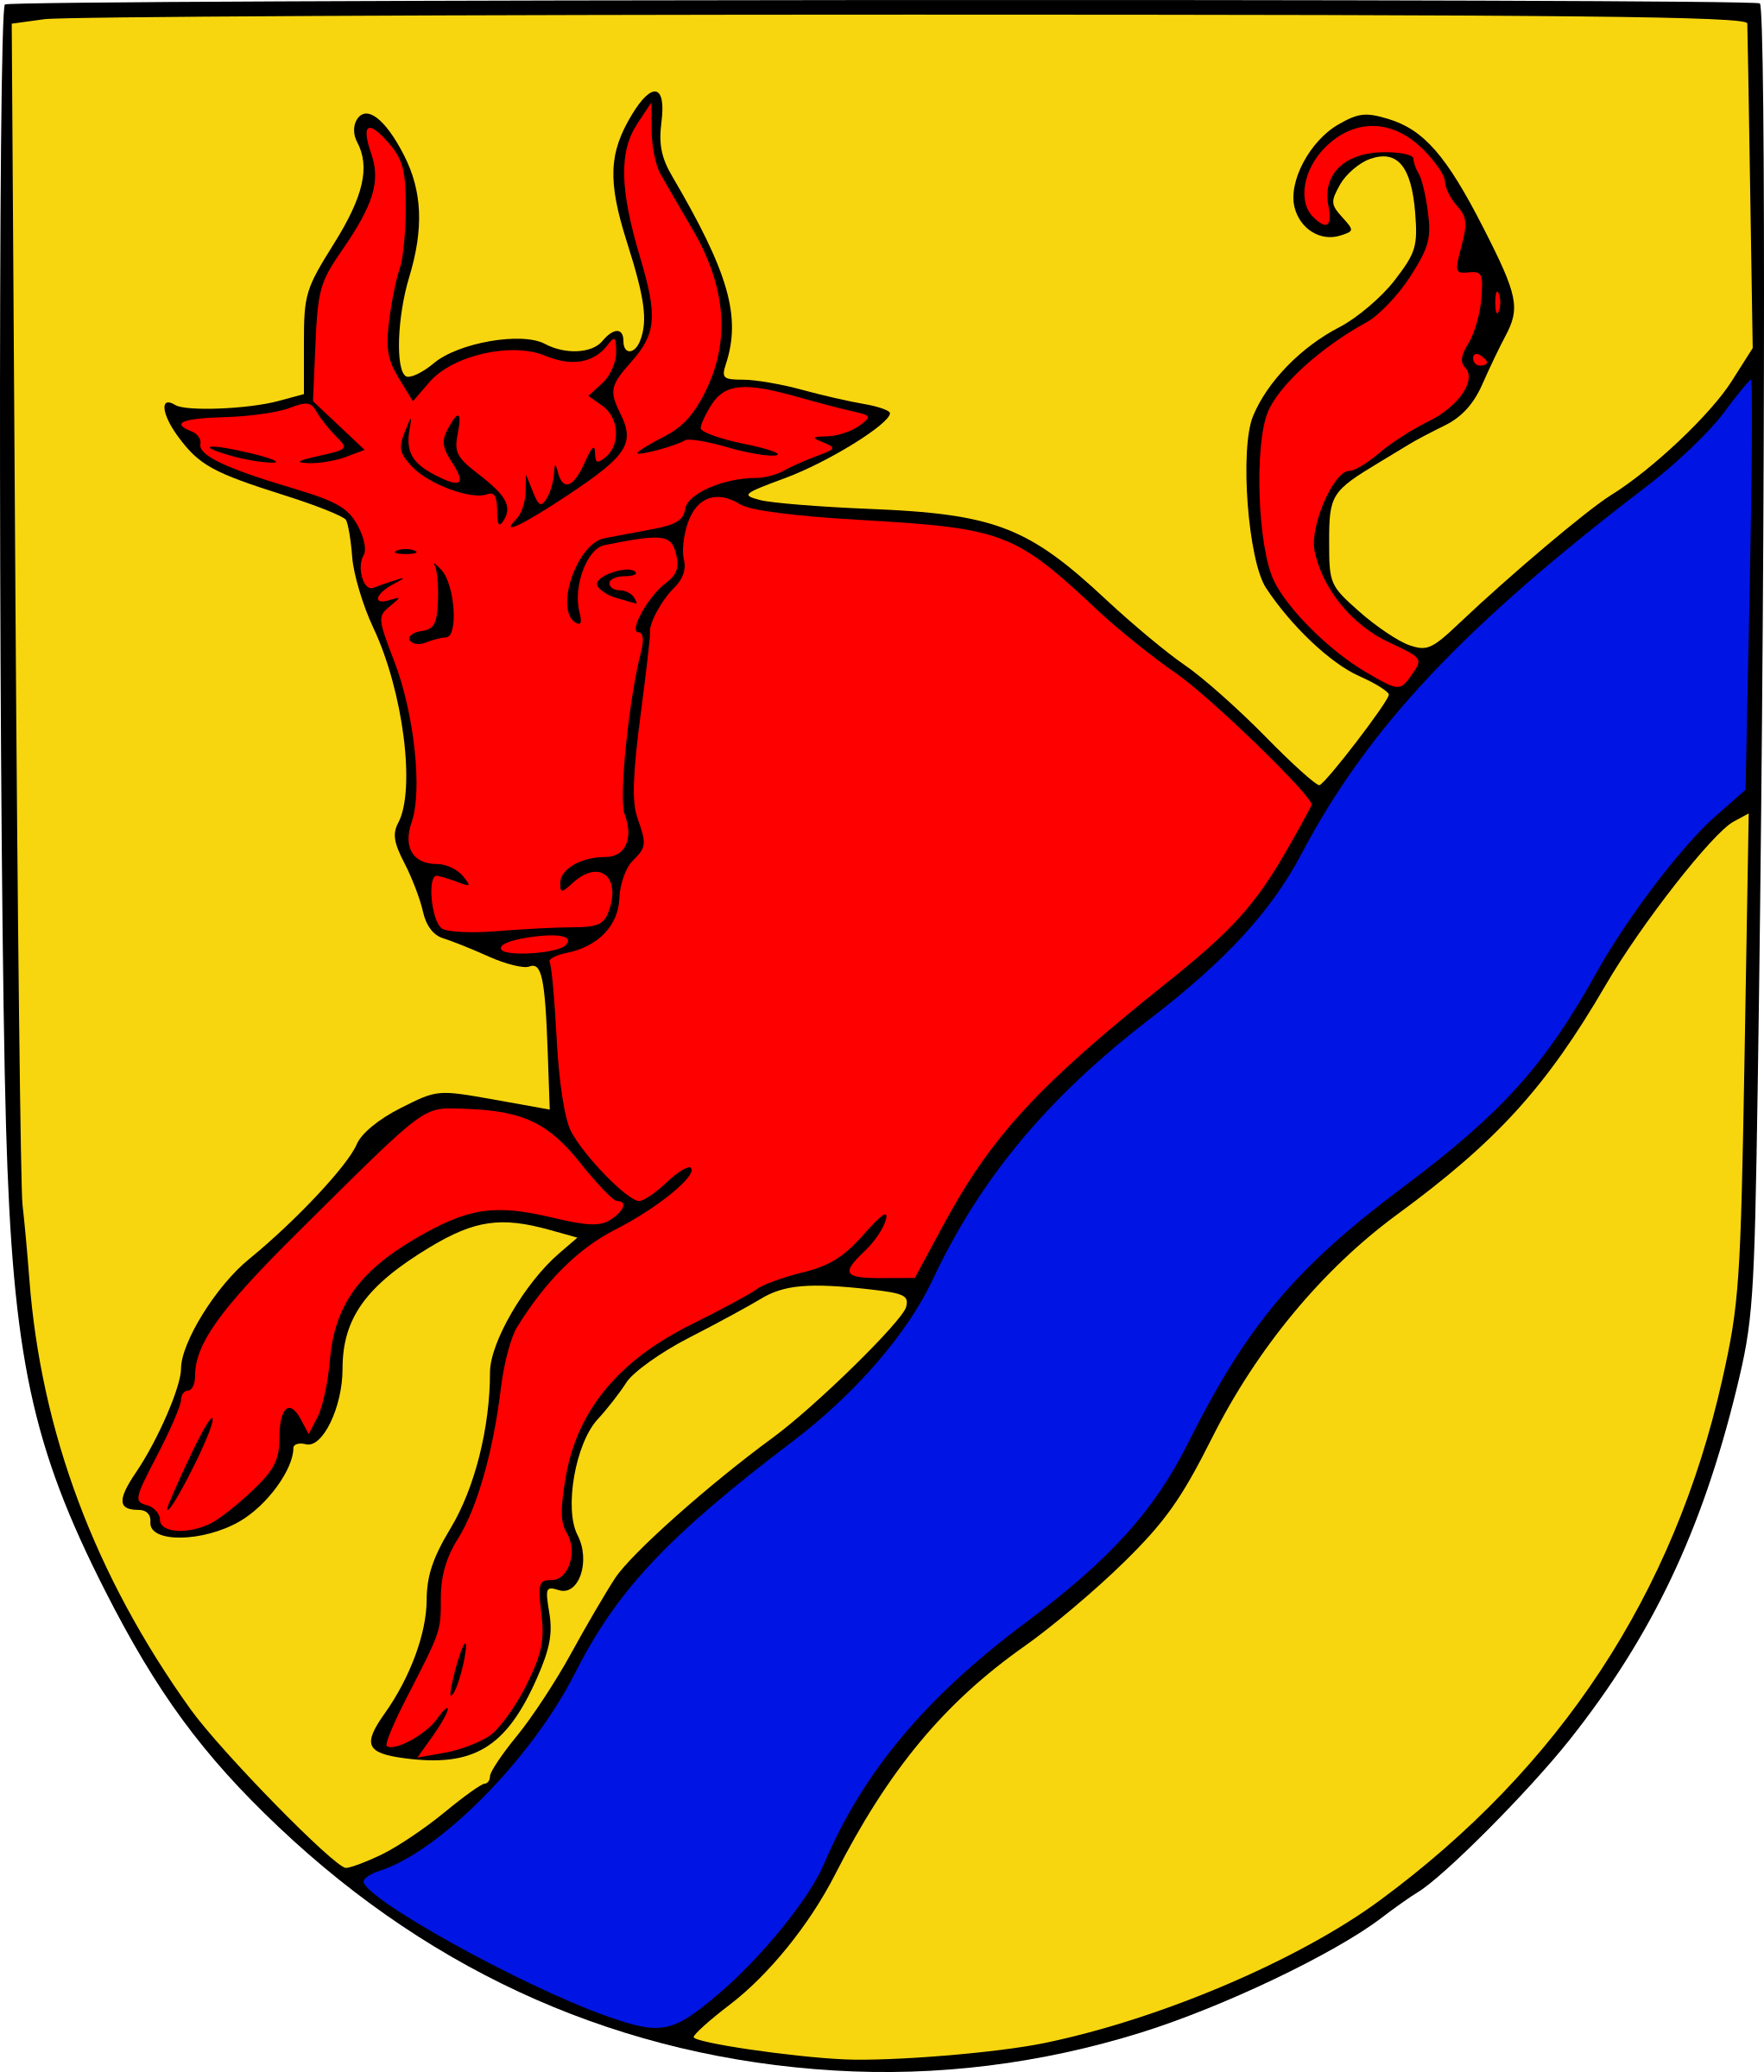 Mariestad coat of arms by liftarn